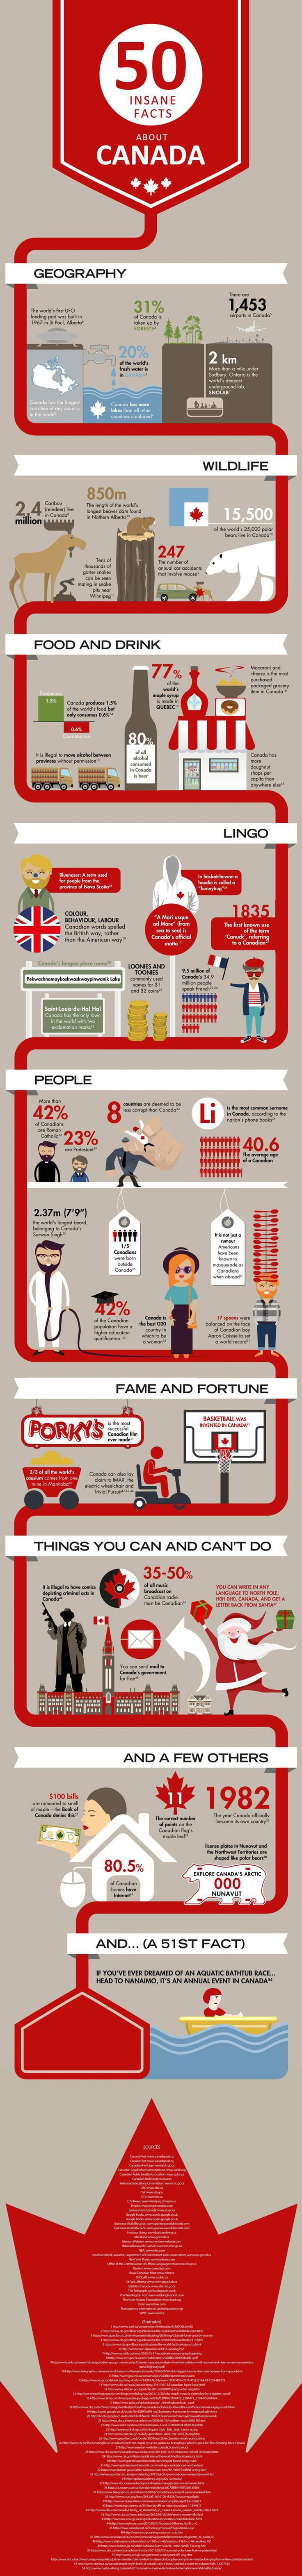 50 Interesting Facts About Canada - Travel Infographic. Topic: Canadian people, country statistics, geography and culture.